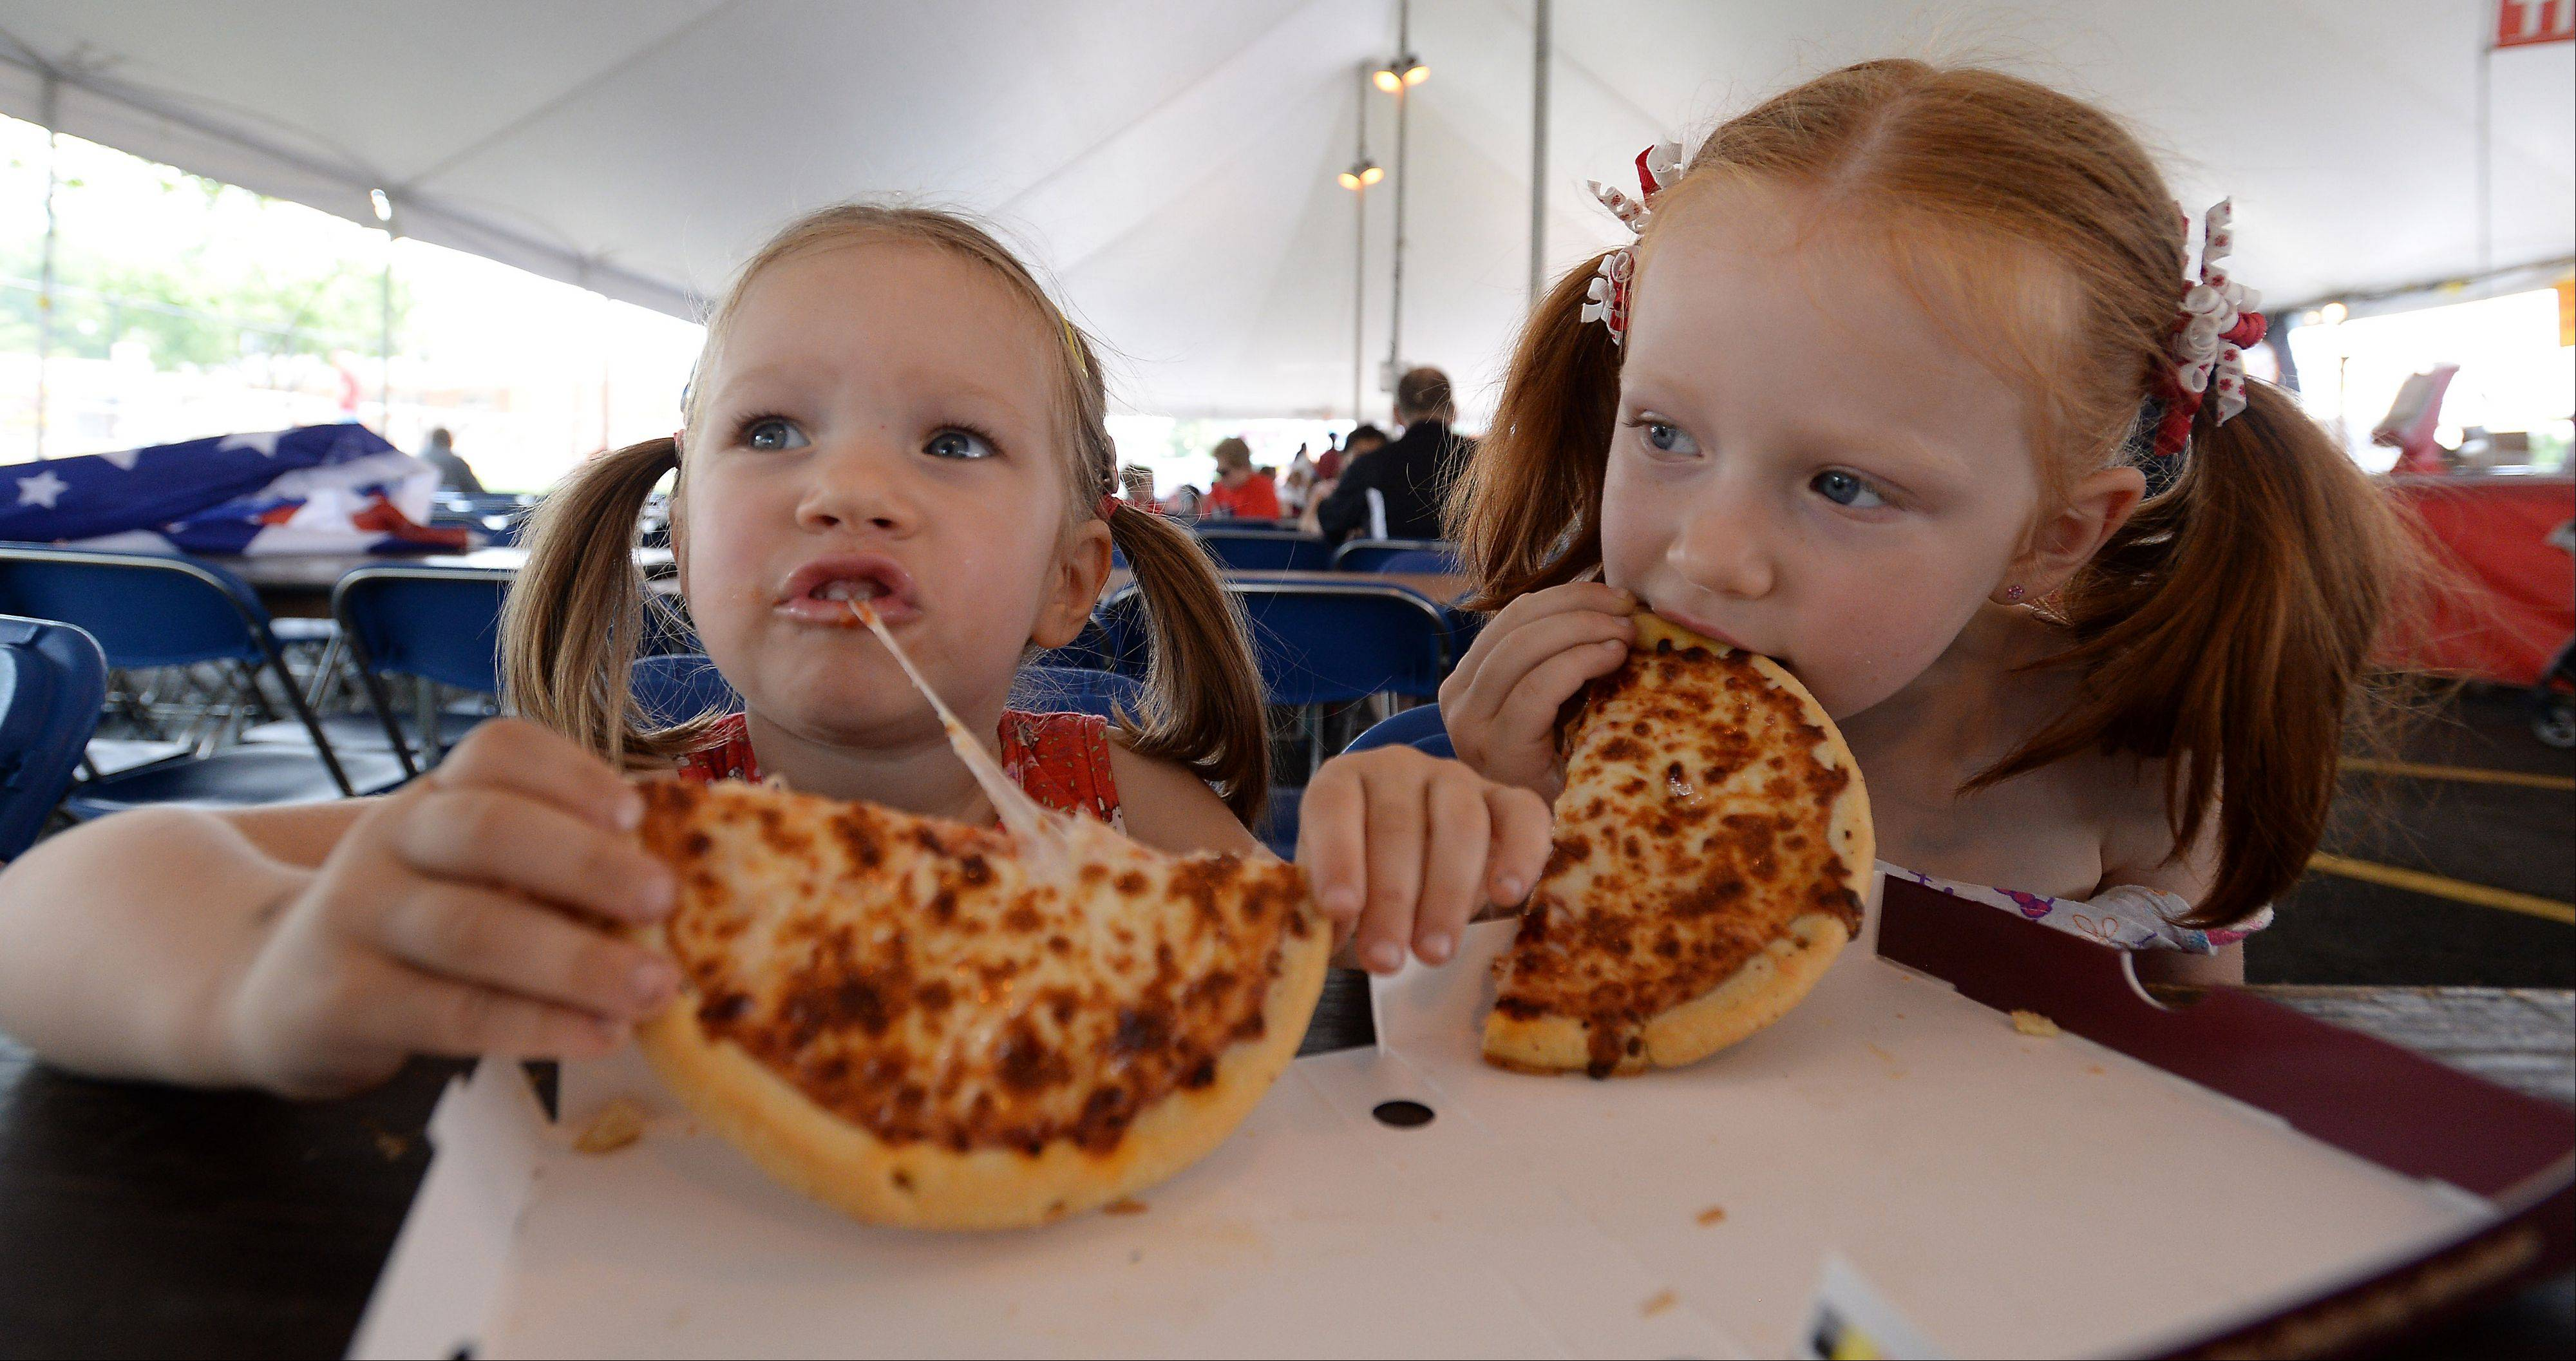 Frontier Days festivities kicks off on the Fourth of July with Nela, 3, and her sister Ula Zadecki, 5, of Arlington Heights finding the pizza hot and cheesy as they have lunch after the parade.